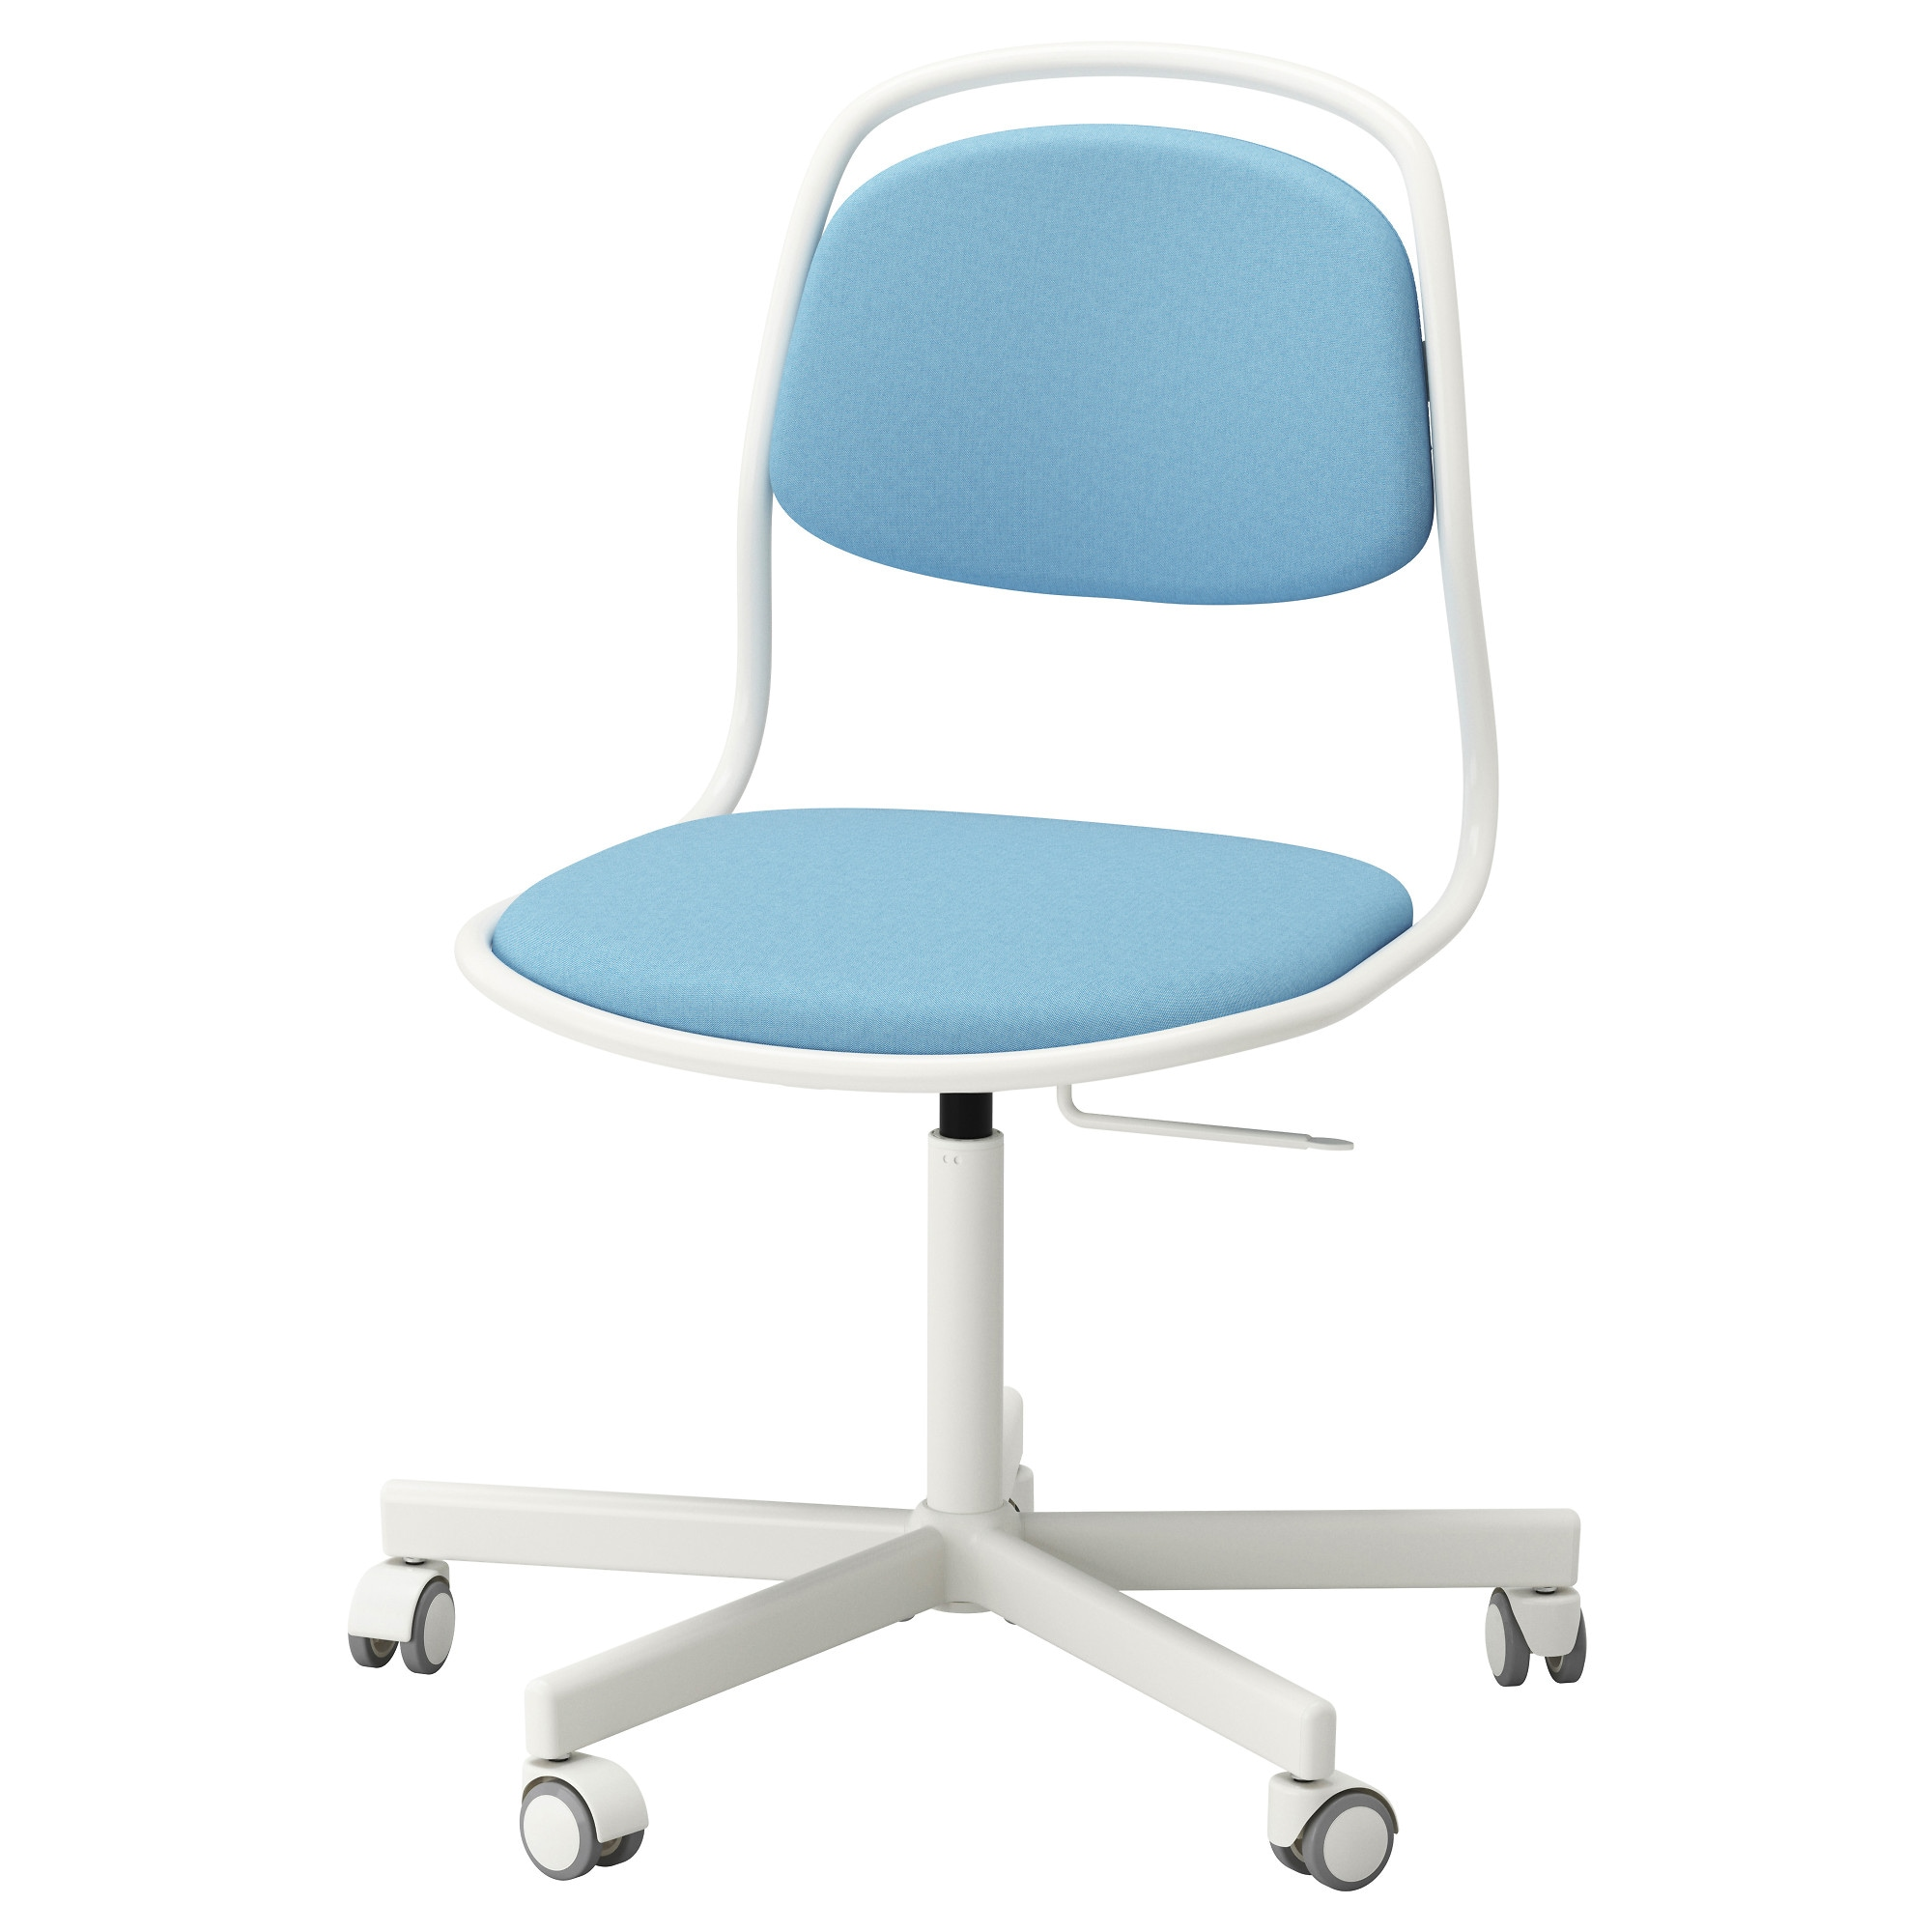 White comfy chairs -  Rfj Ll Sporren Swivel Chair White Vissle Light Green Tested For 243 Lb